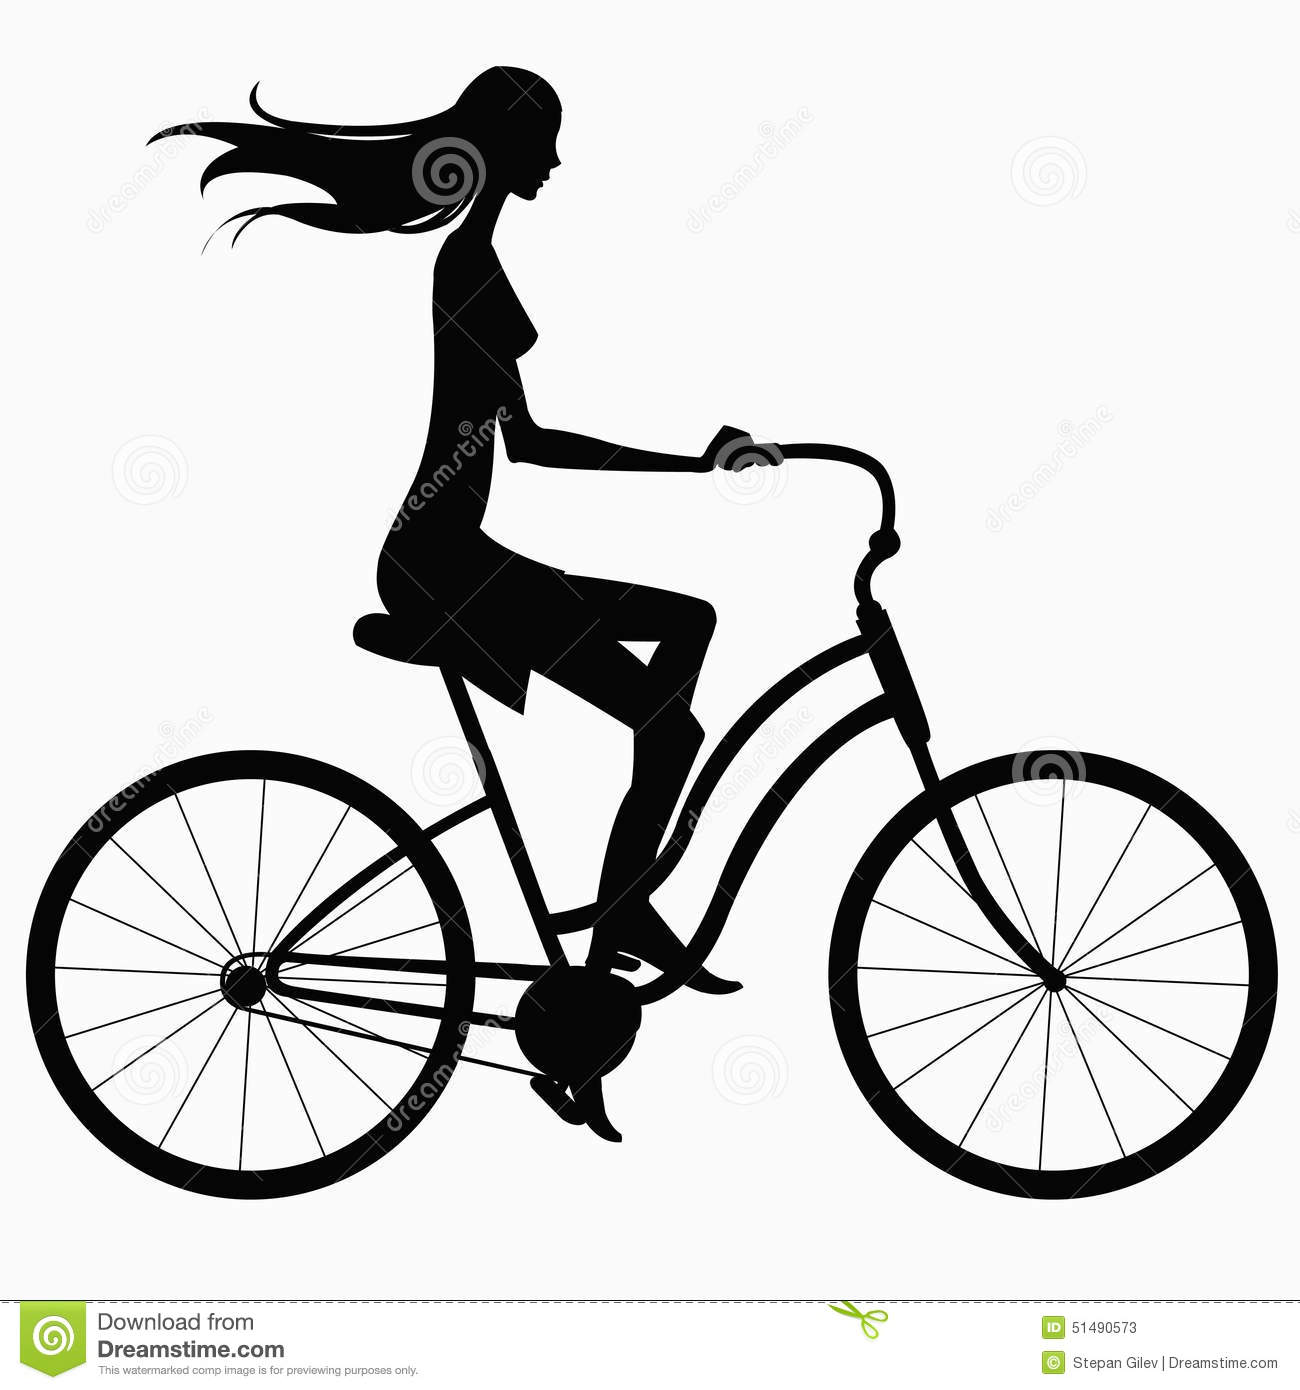 Female Cycling Clip Art Stock Photos, Images, & Pictures.